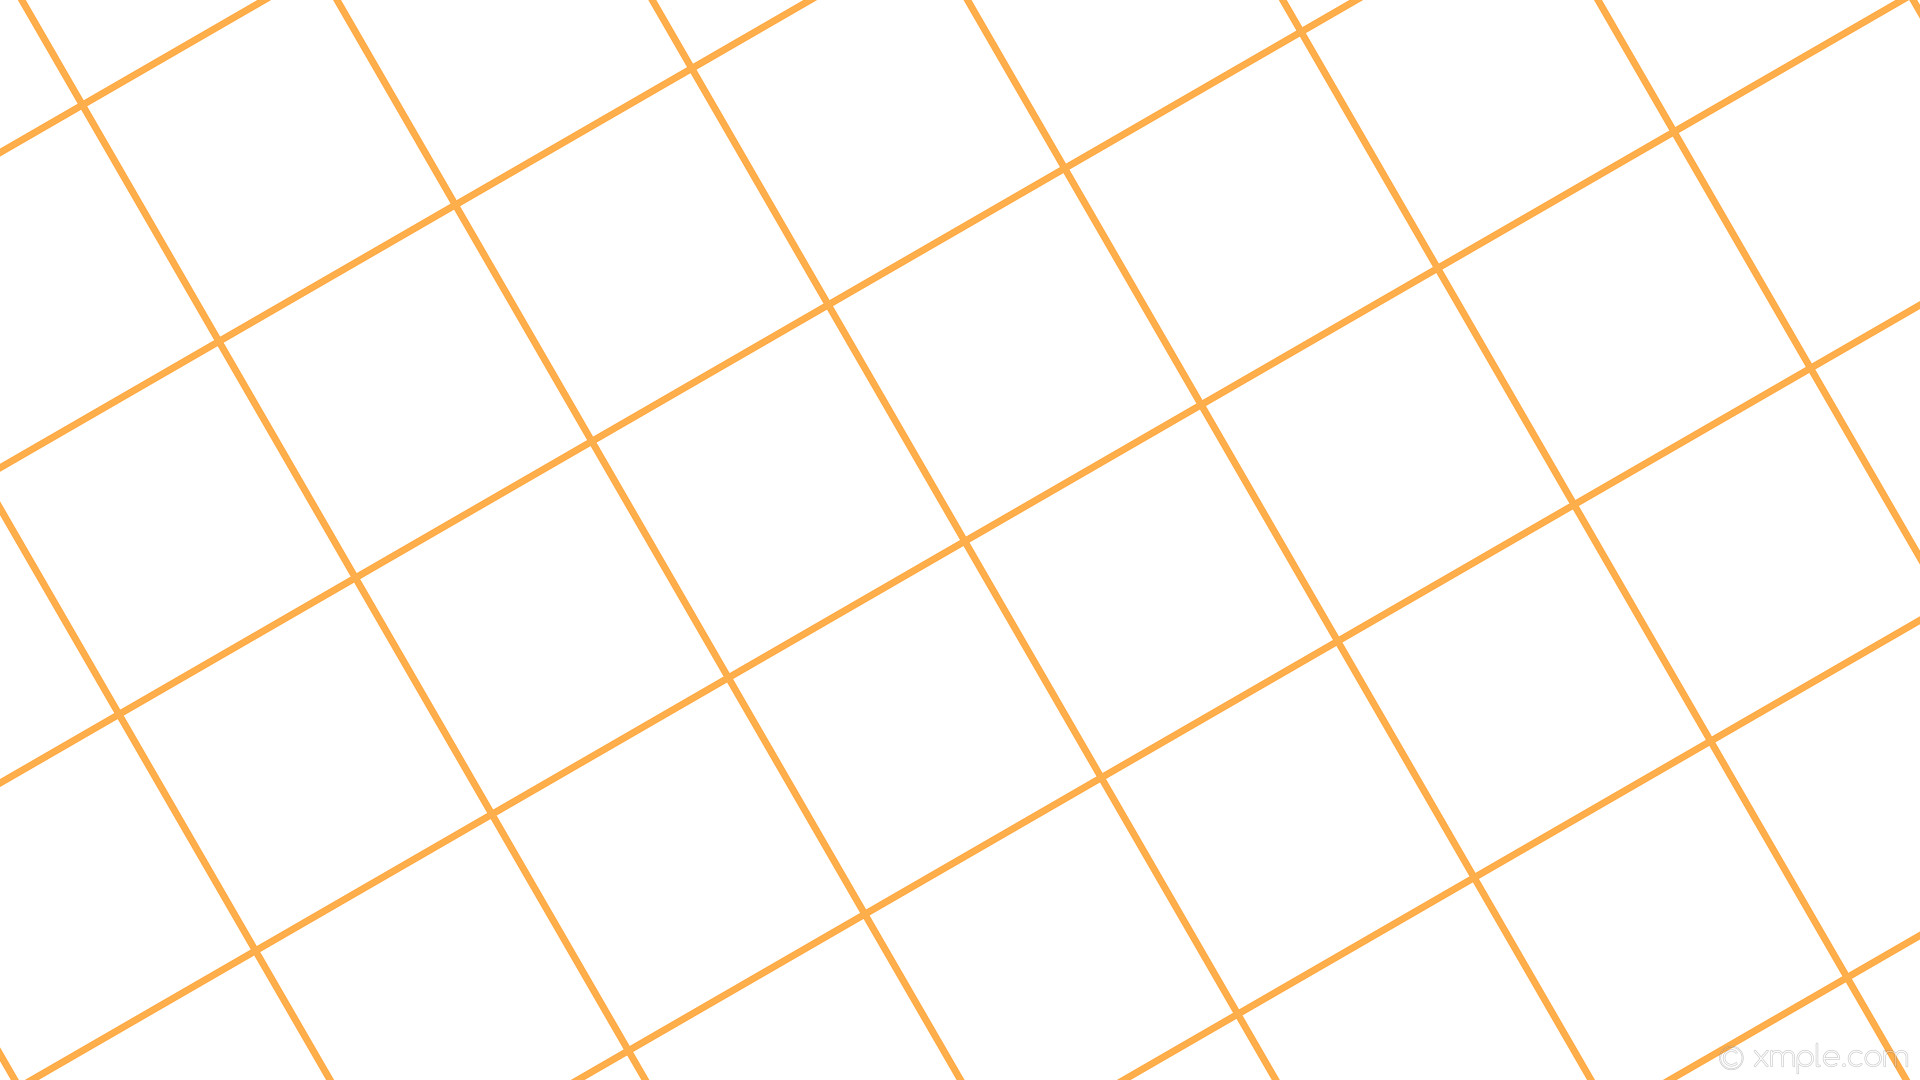 1920x1080 wallpaper graph paper orange white grid dark orange #ffffff #ff8c00 30° 7px  273px